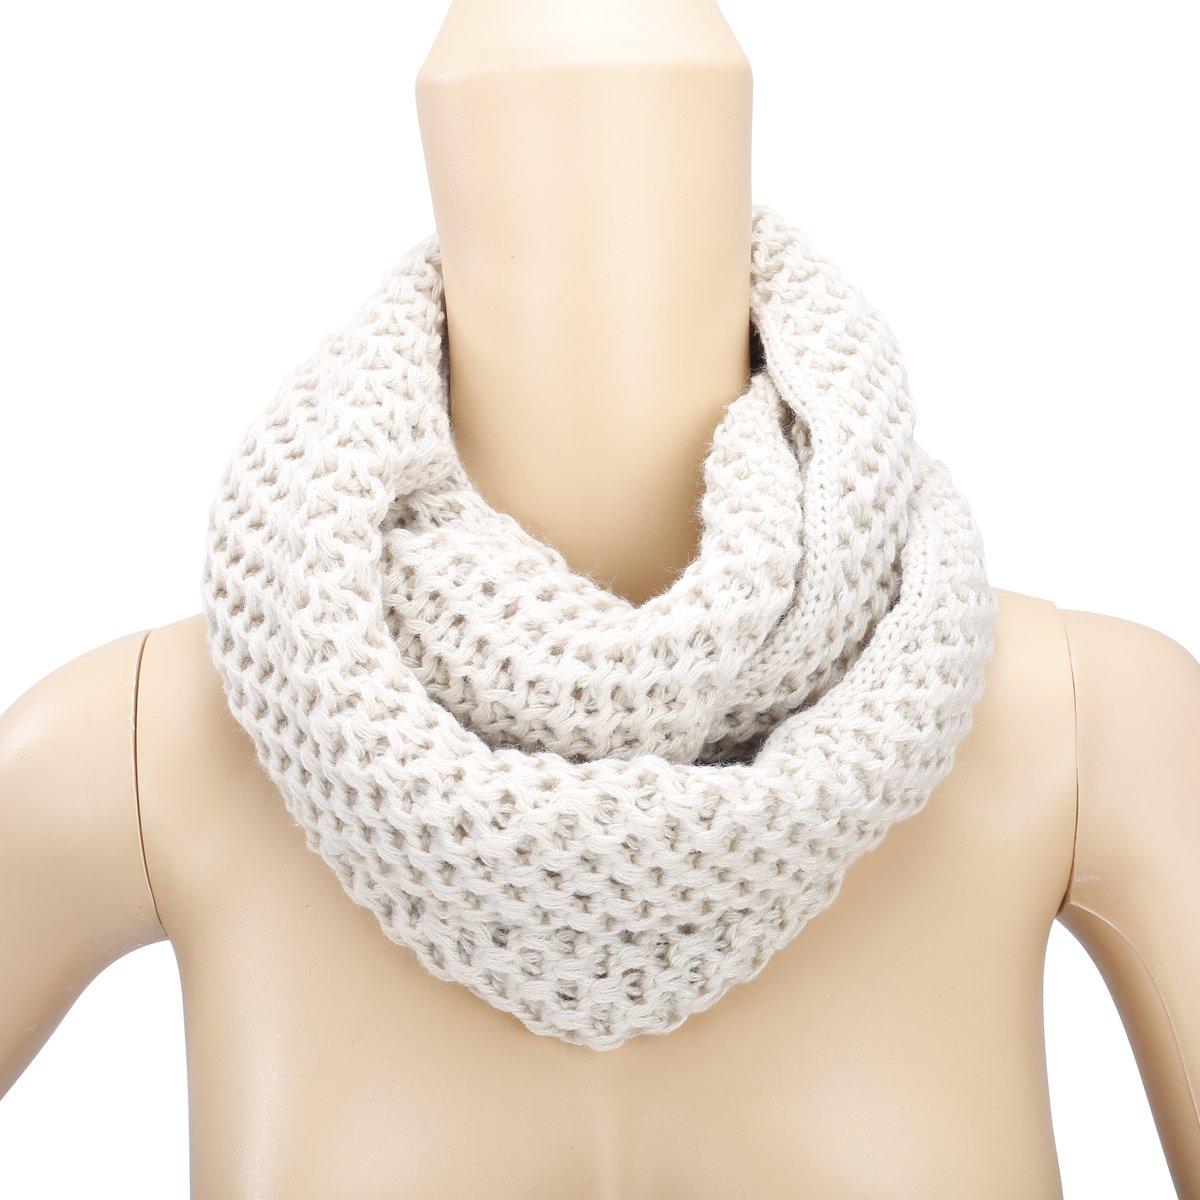 Eforstore Unisex Winter Warm Knitted Thicken Hollow Out Neckerchief Knit Infinity Scarf Christmas New Year Birthday Gift For Your Family and Friends Women Men (Beige)